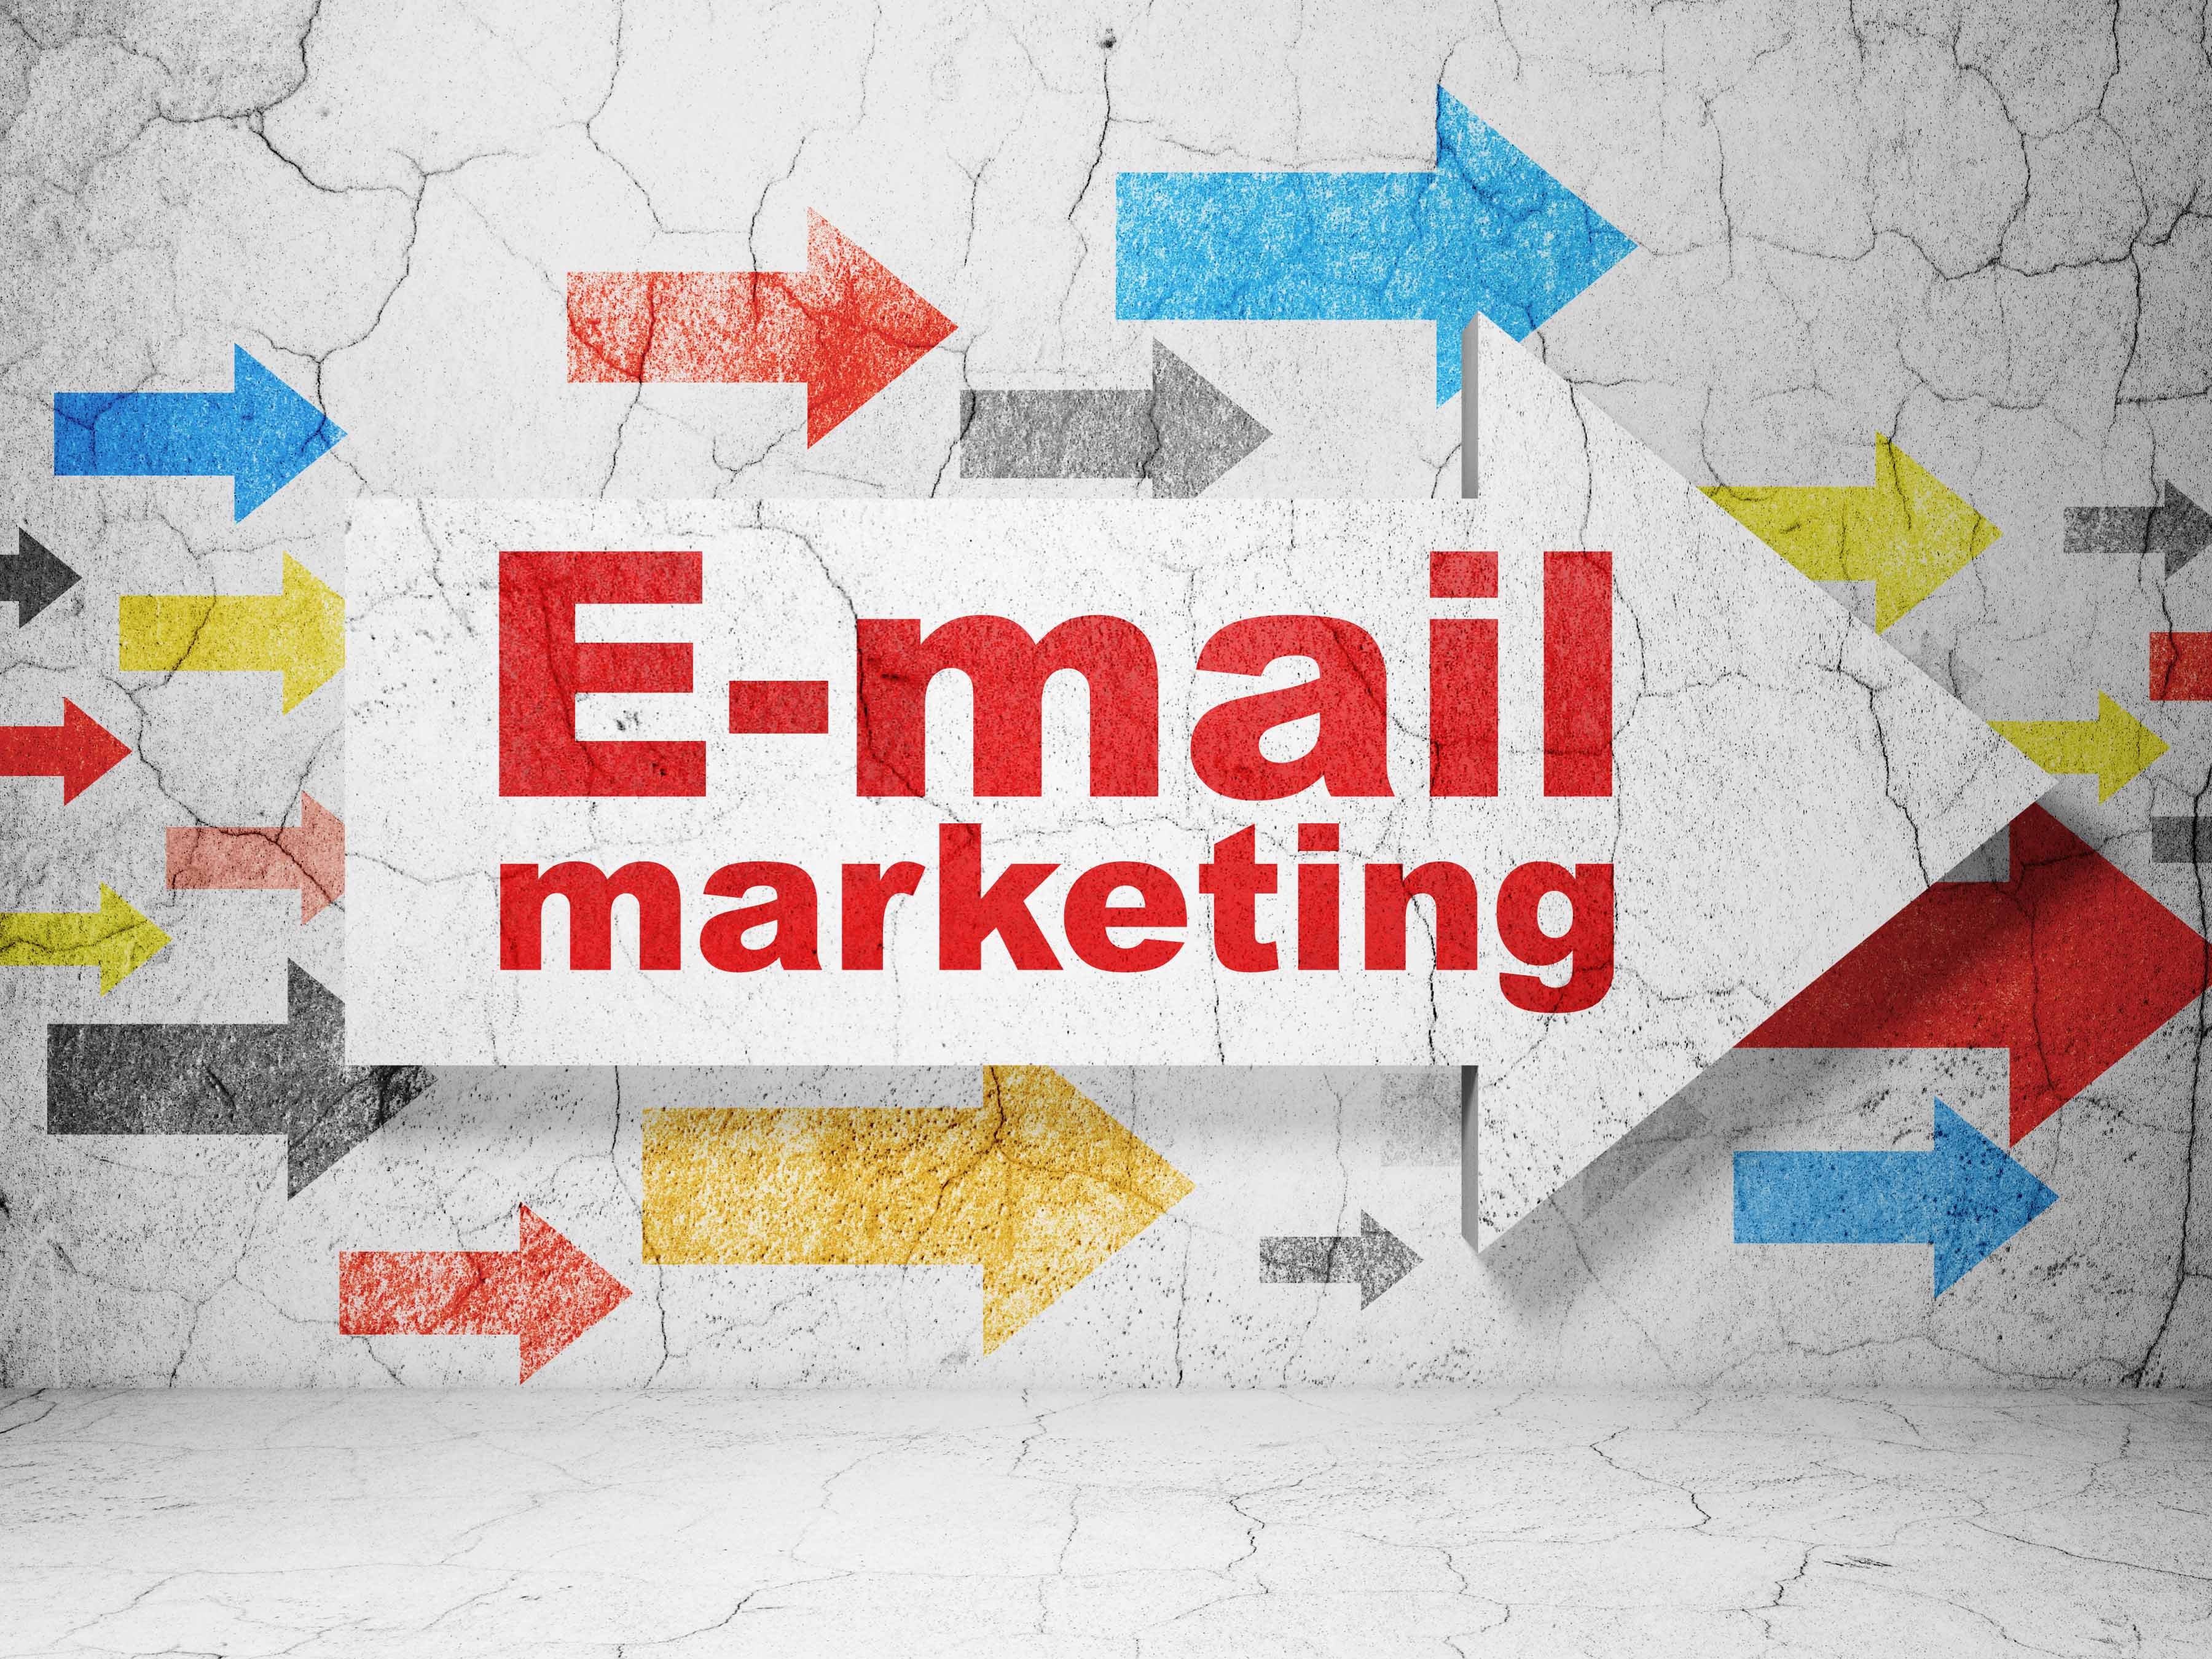 Role of email marketing list & direct mailing list for the expansion of small business